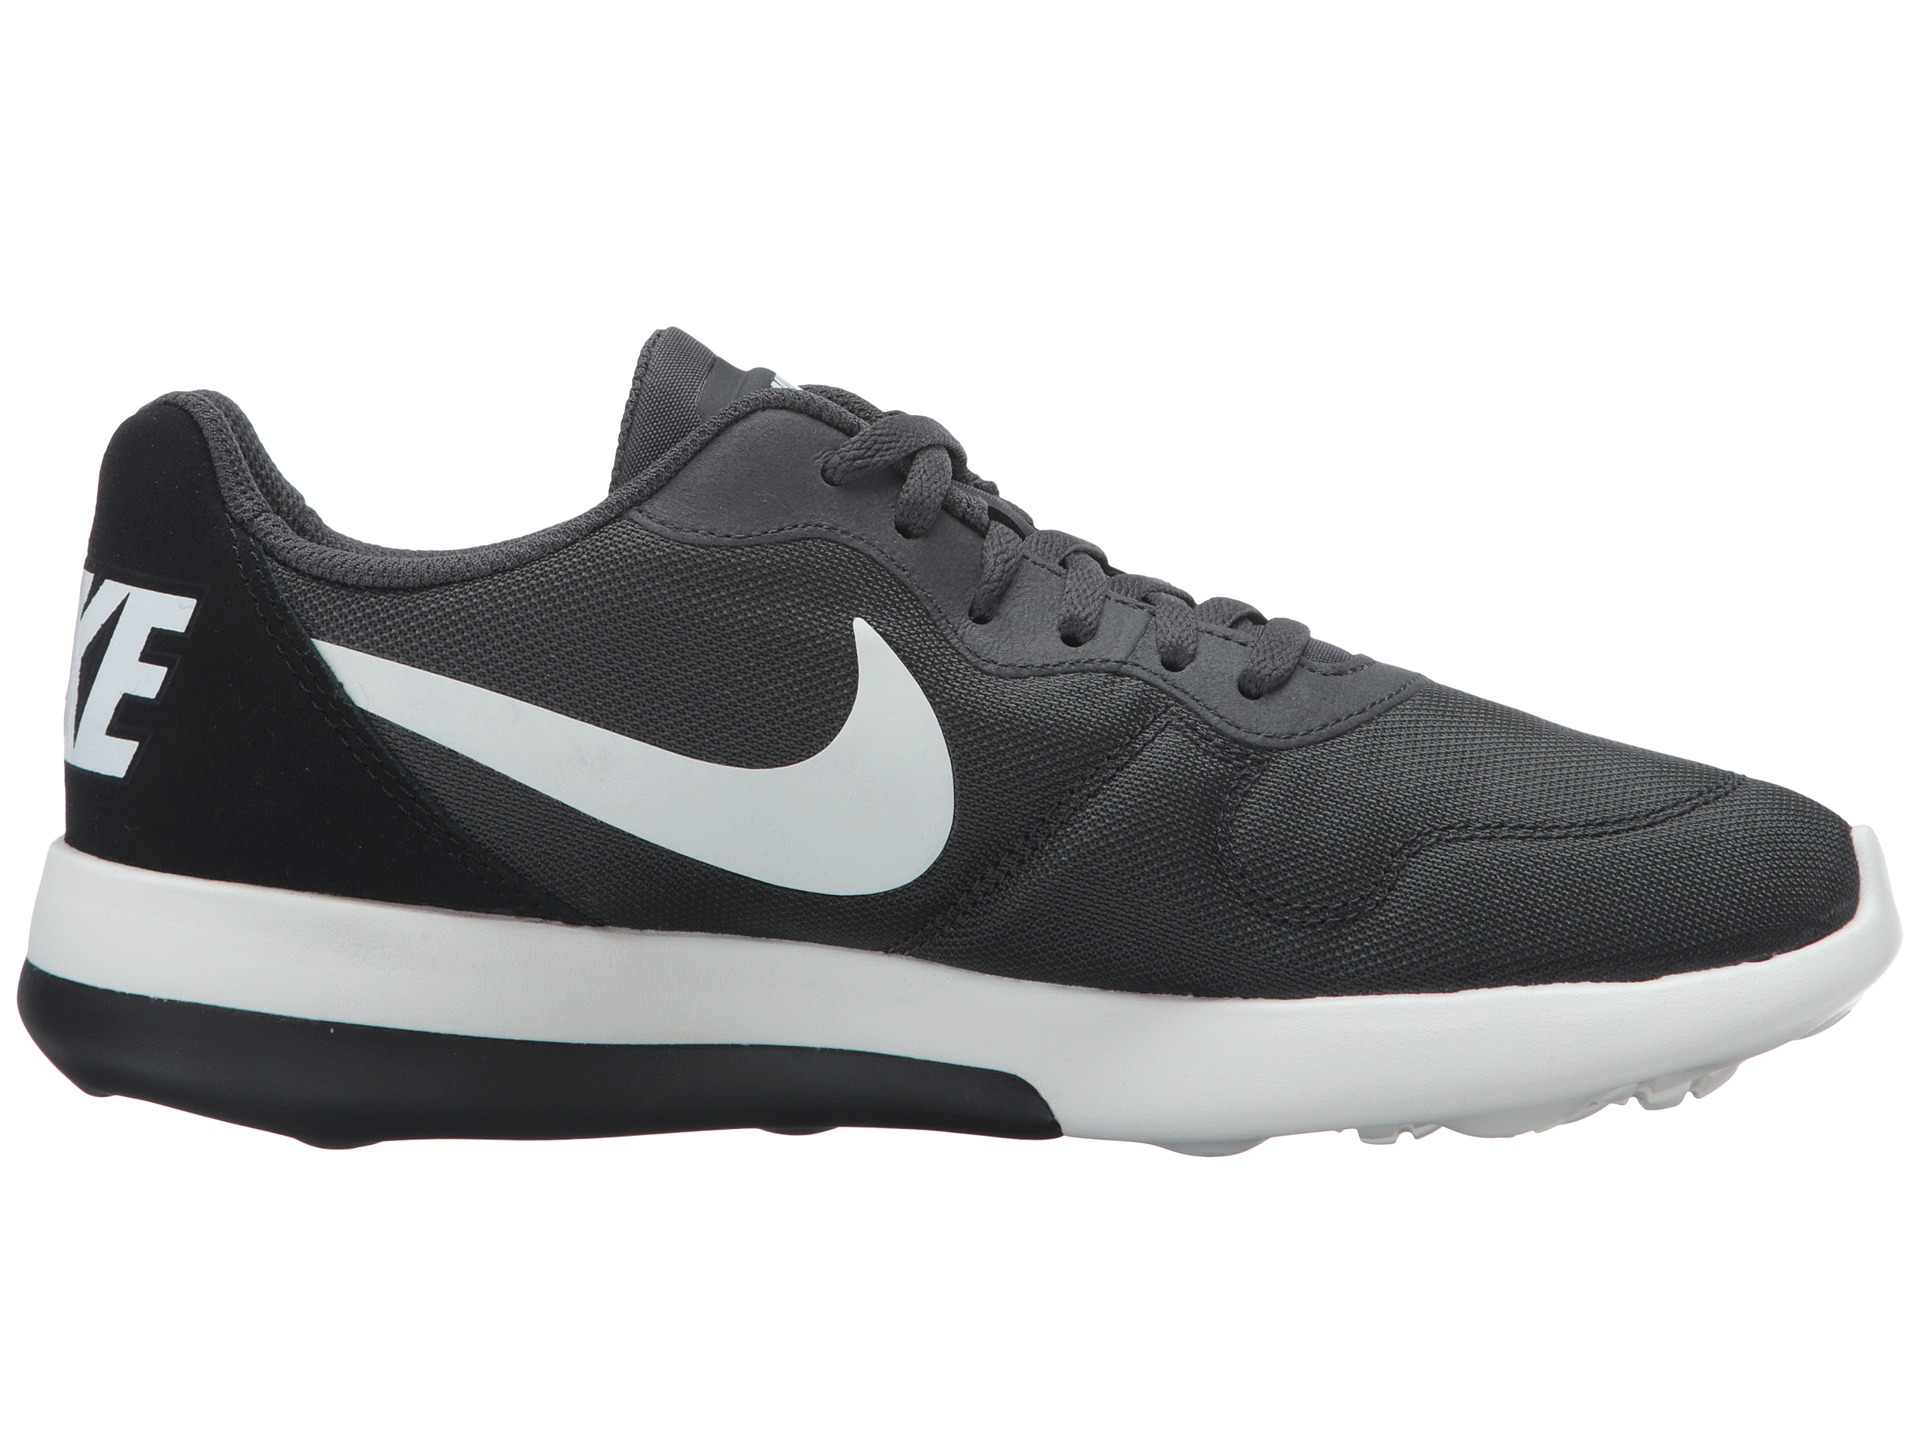 nike shox chaussure de course poursuite - Nike MD Runner 2 LW - Zappos.com Free Shipping BOTH Ways